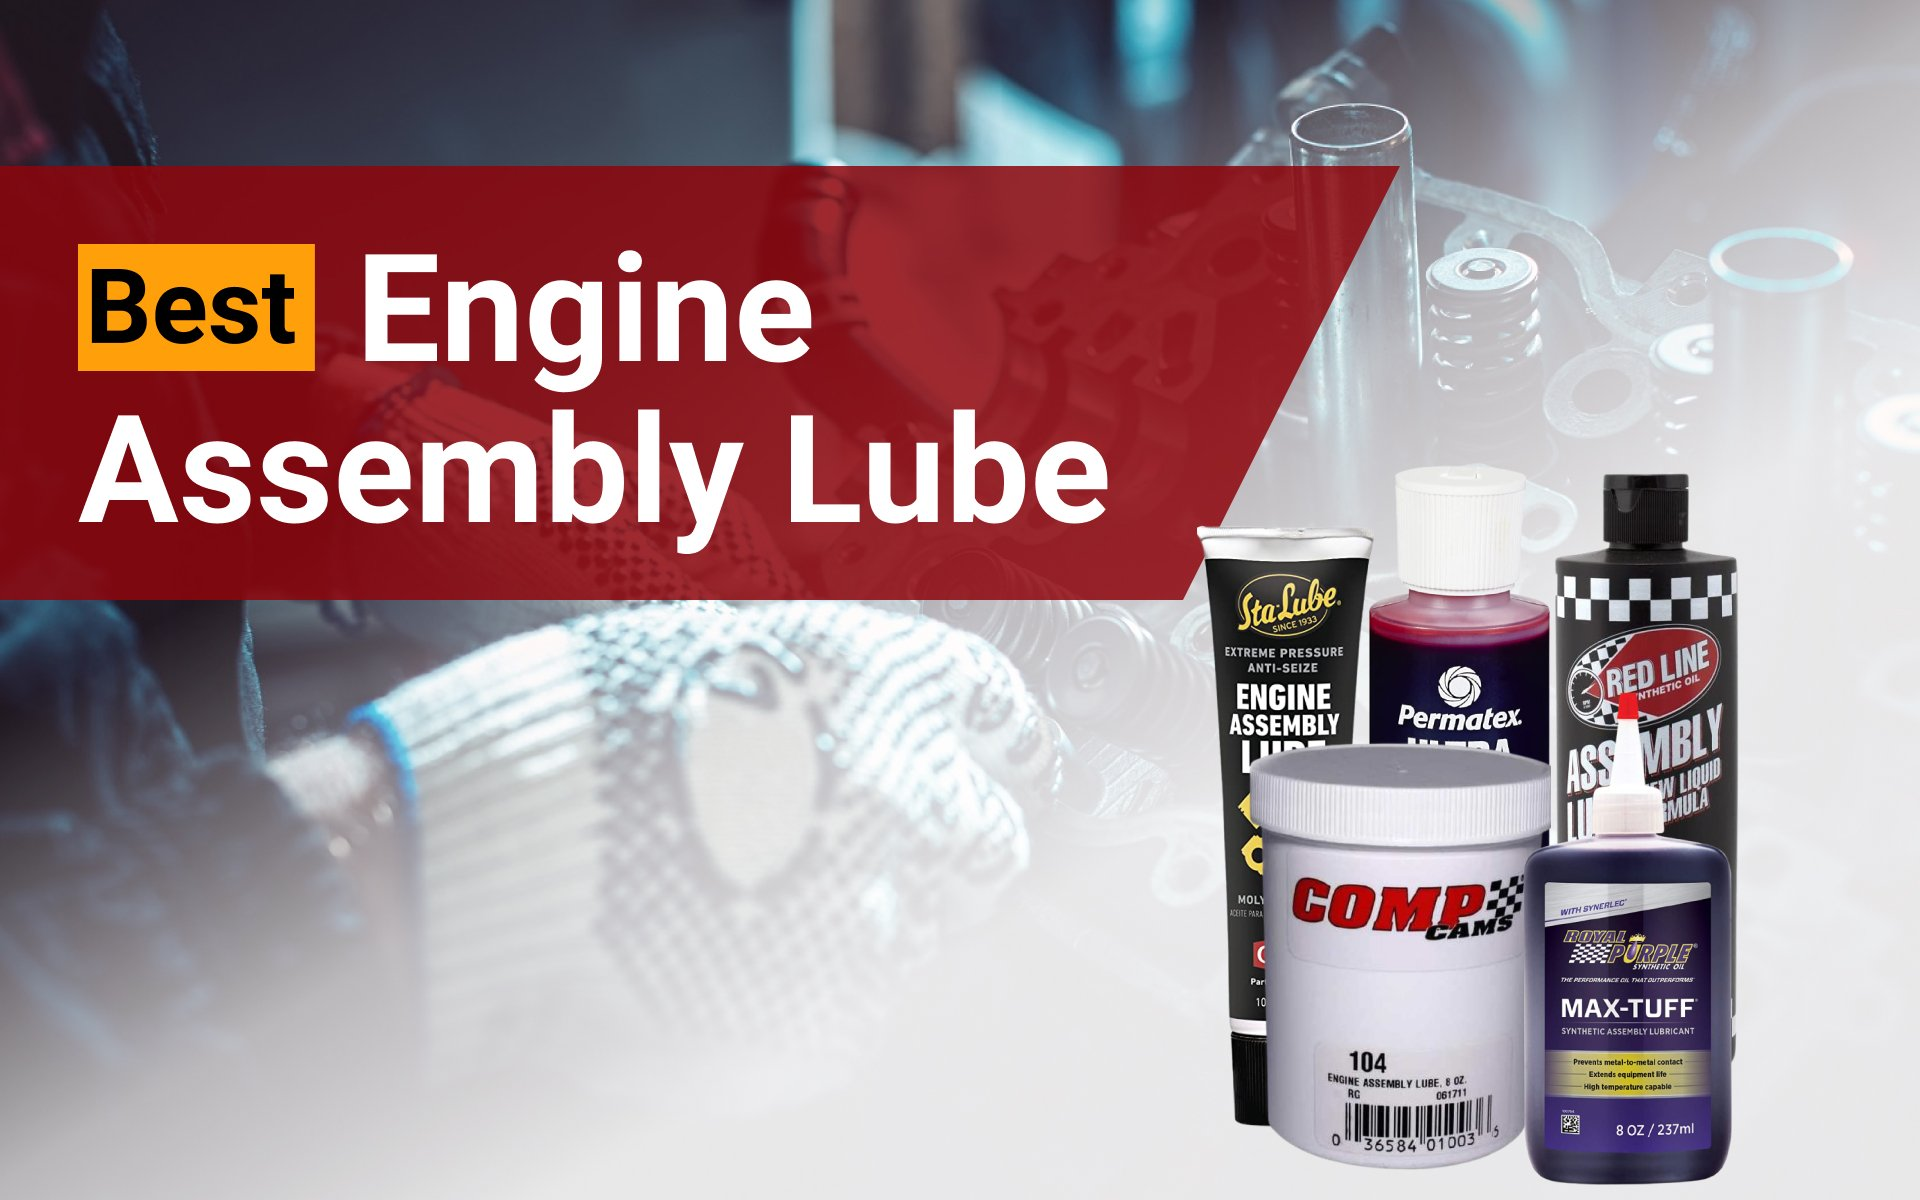 Best Engine Assembly Lube: image